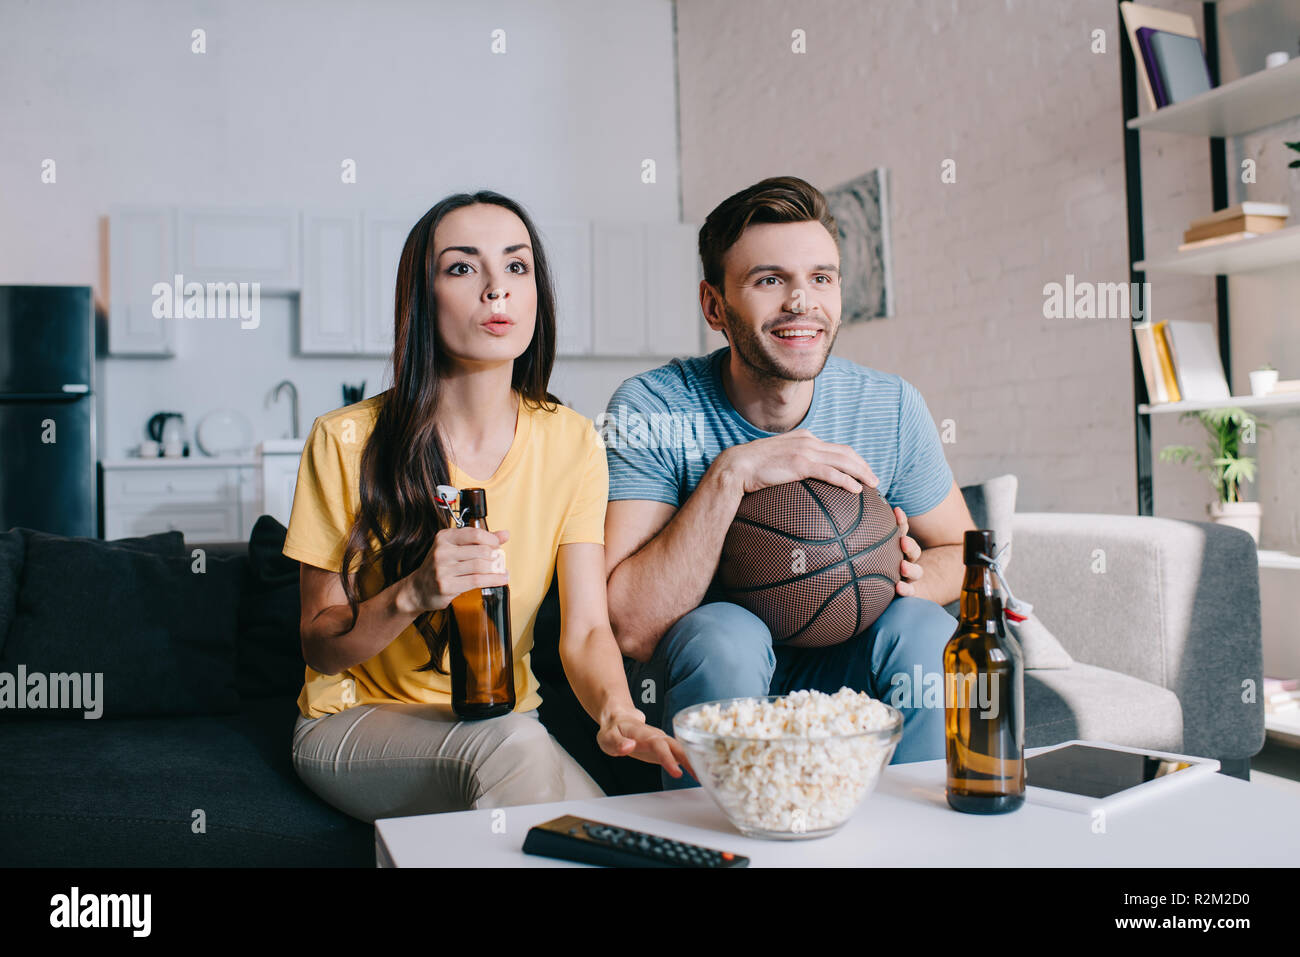 Young Couple Football Beer Snack High Resolution Stock Photography And Images Alamy